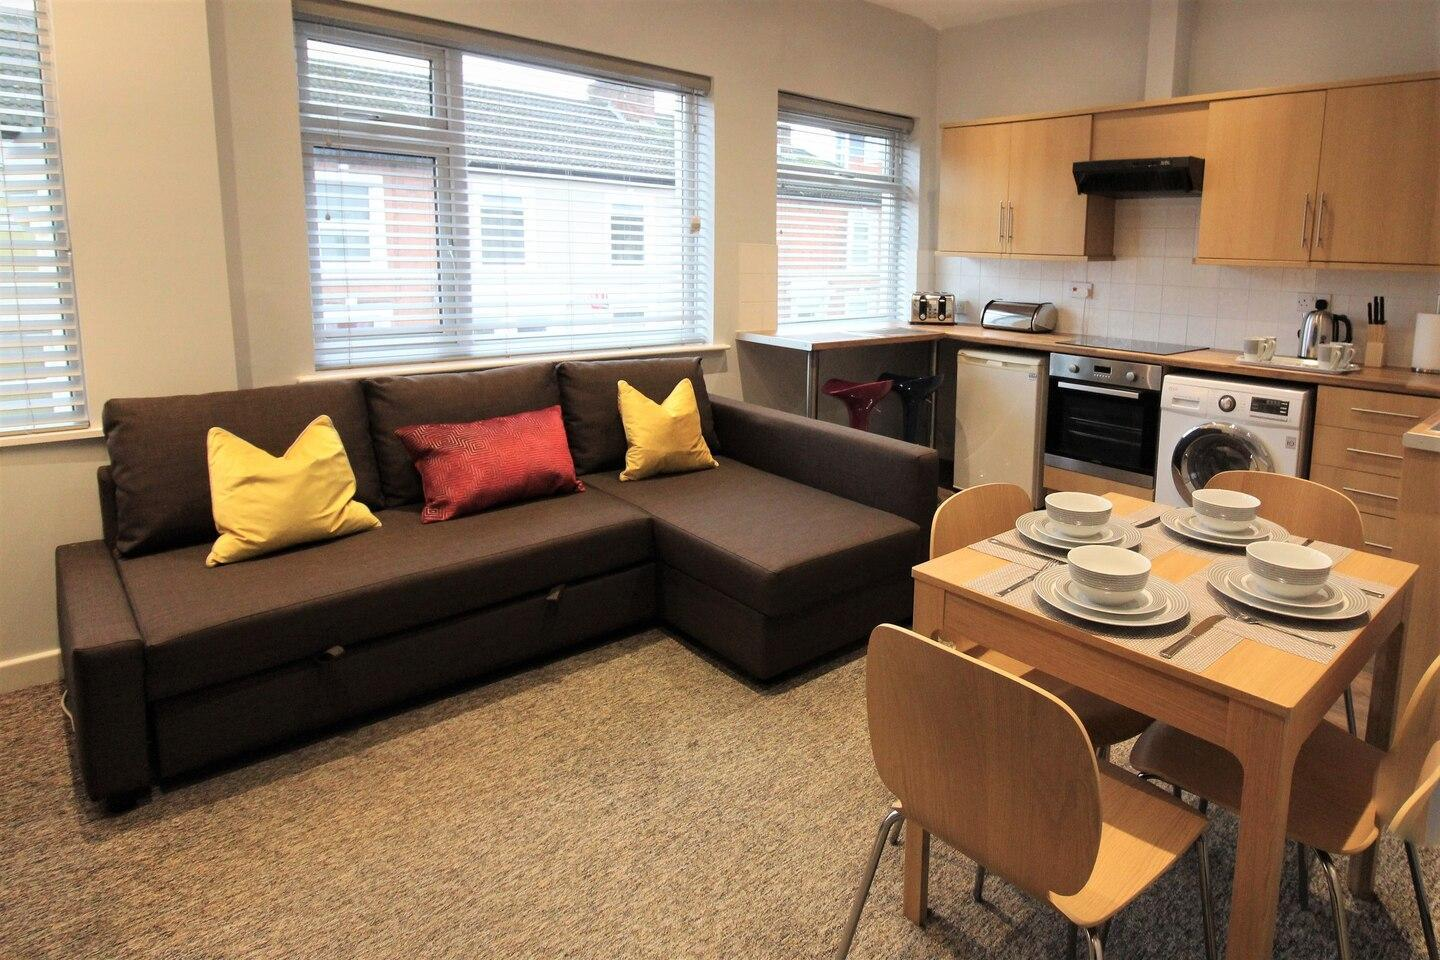 Sunnyside View-1-bed Apartment, Coventry Centre